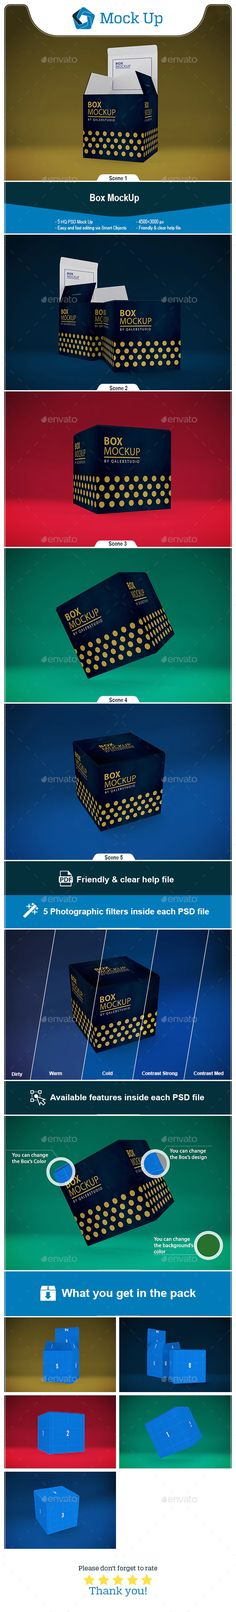 Product Mockups - Box MockUp - Product Mockups by QalebStudio. Box Mockup, Mockup Templates, Print Templates, Graphic Design Templates, Best Graphics, User Interface, Monday Motivation, Presentation Templates, Infographic